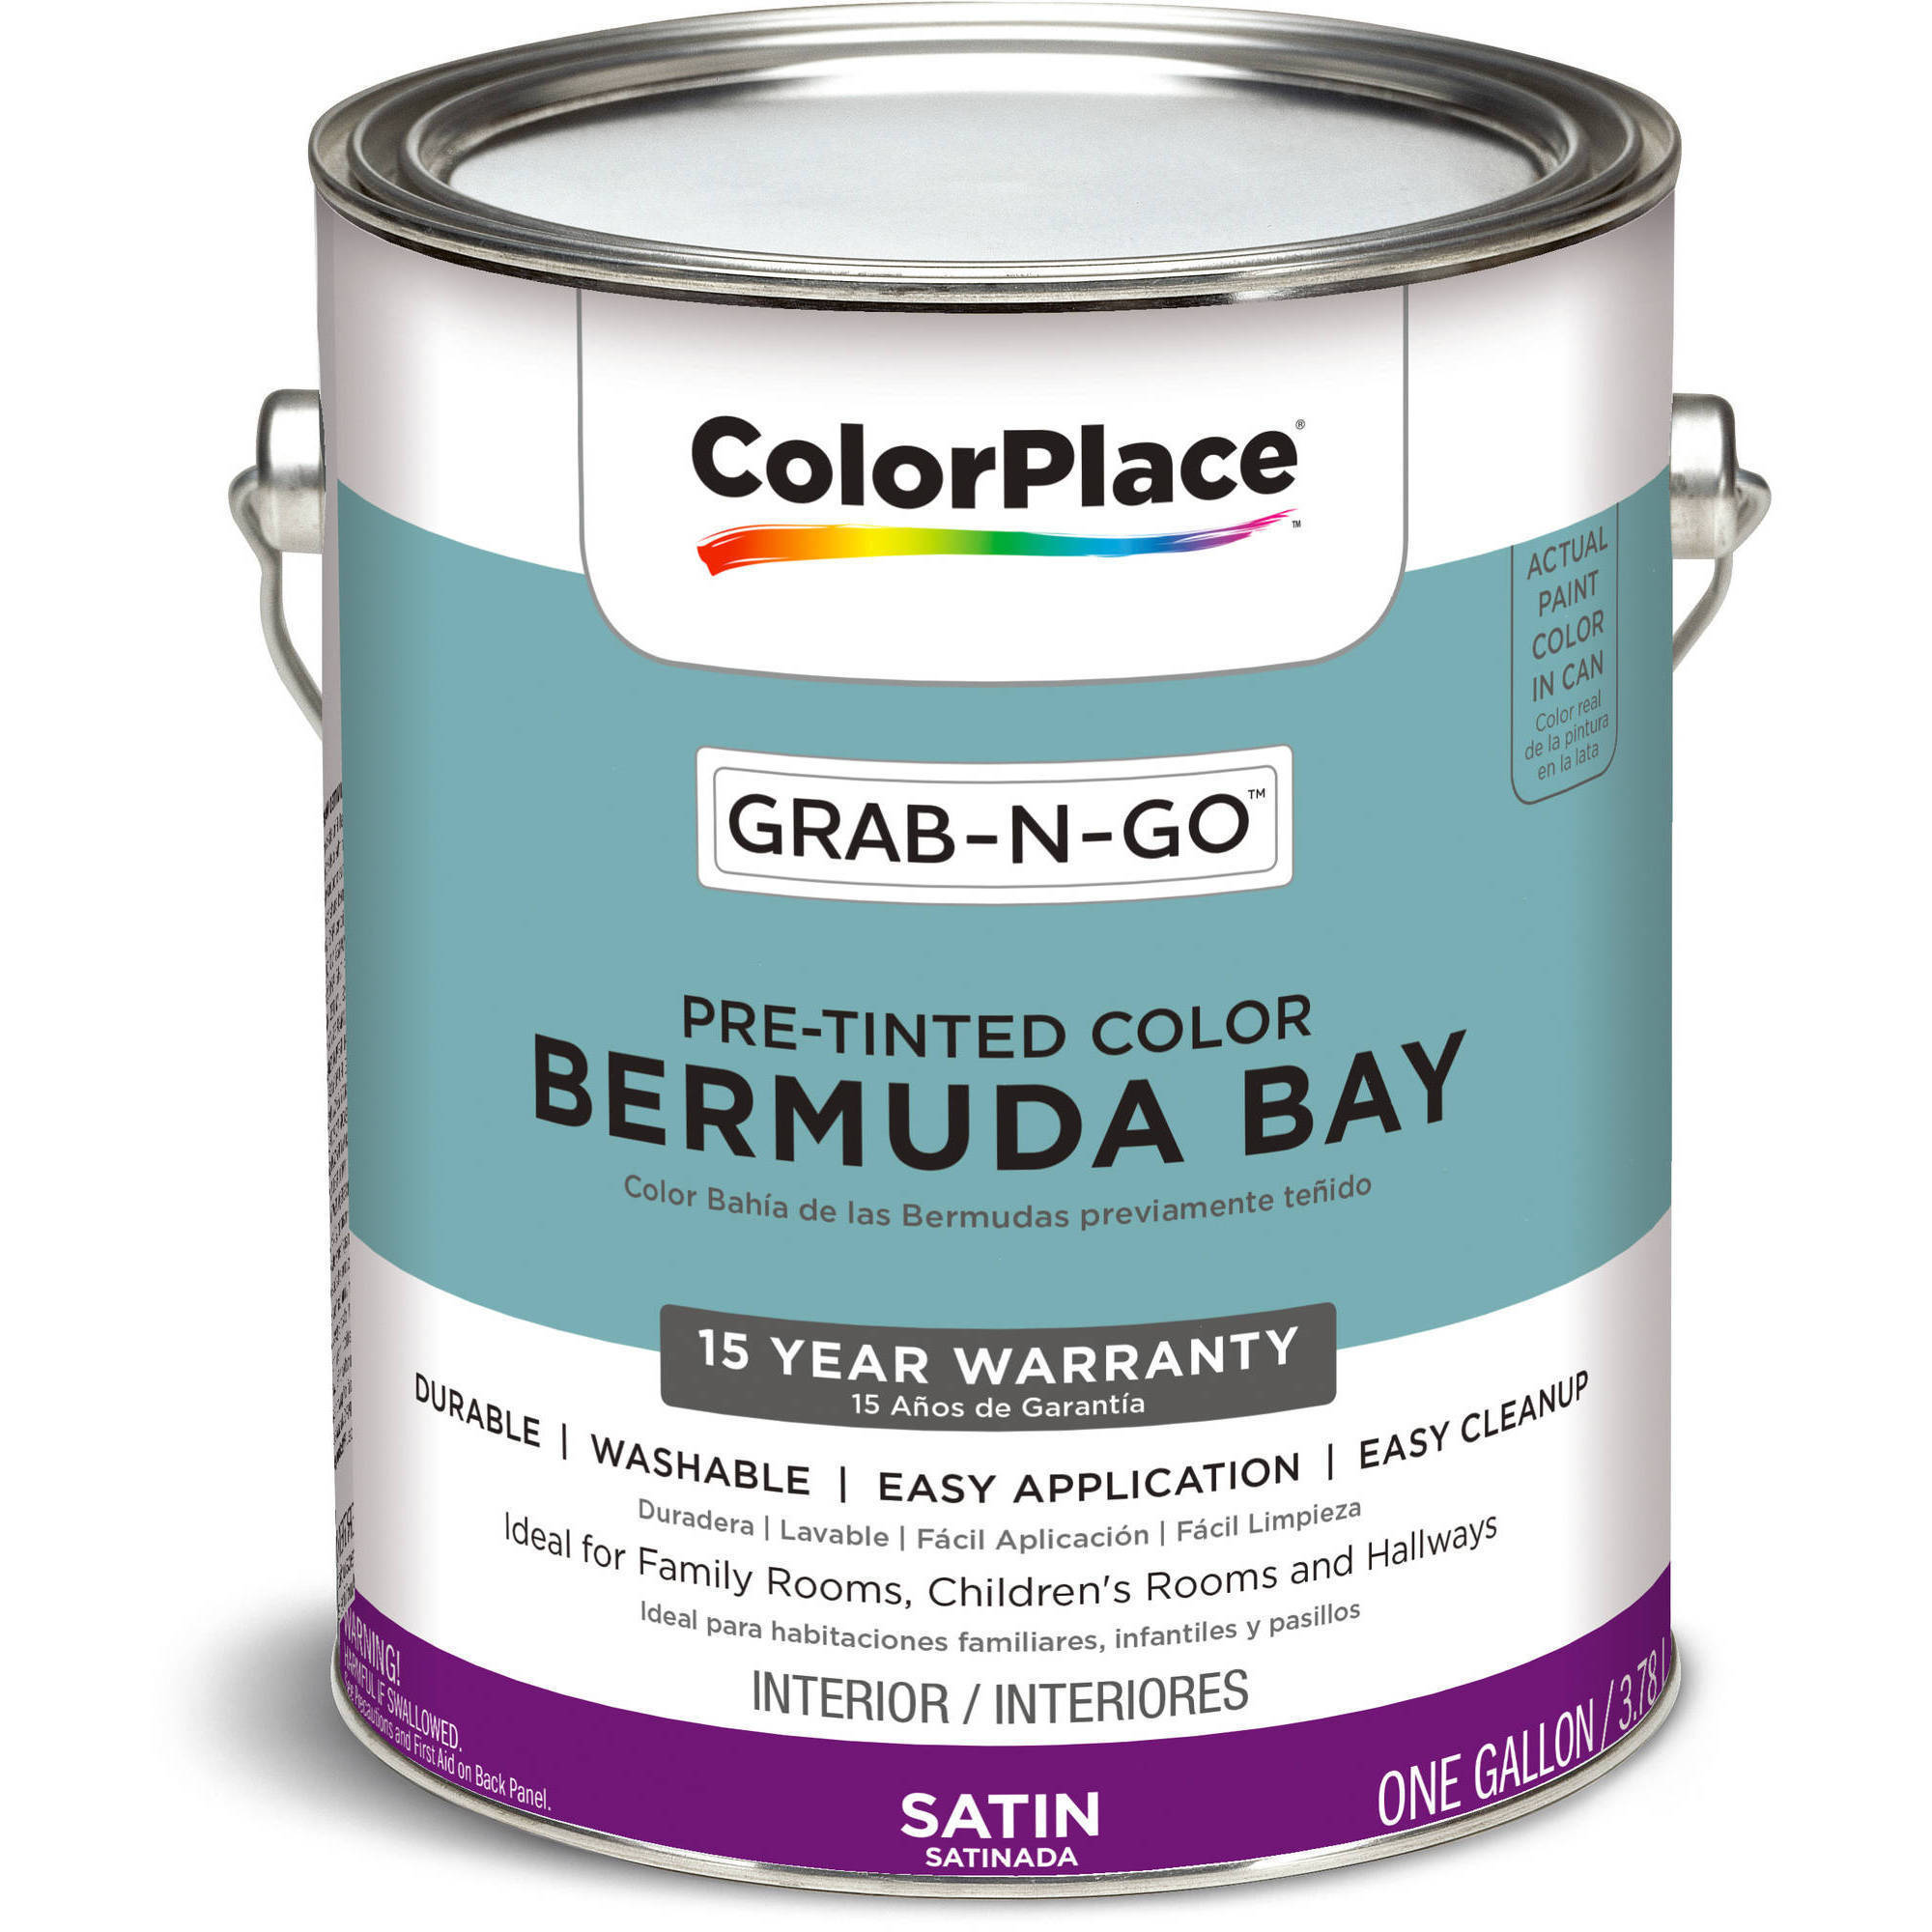 ColorPlace Grab-N-Go, Interior Paint, Satin Finish, Bermuda Bay, 1 Gallon by PPG Architectural Coating